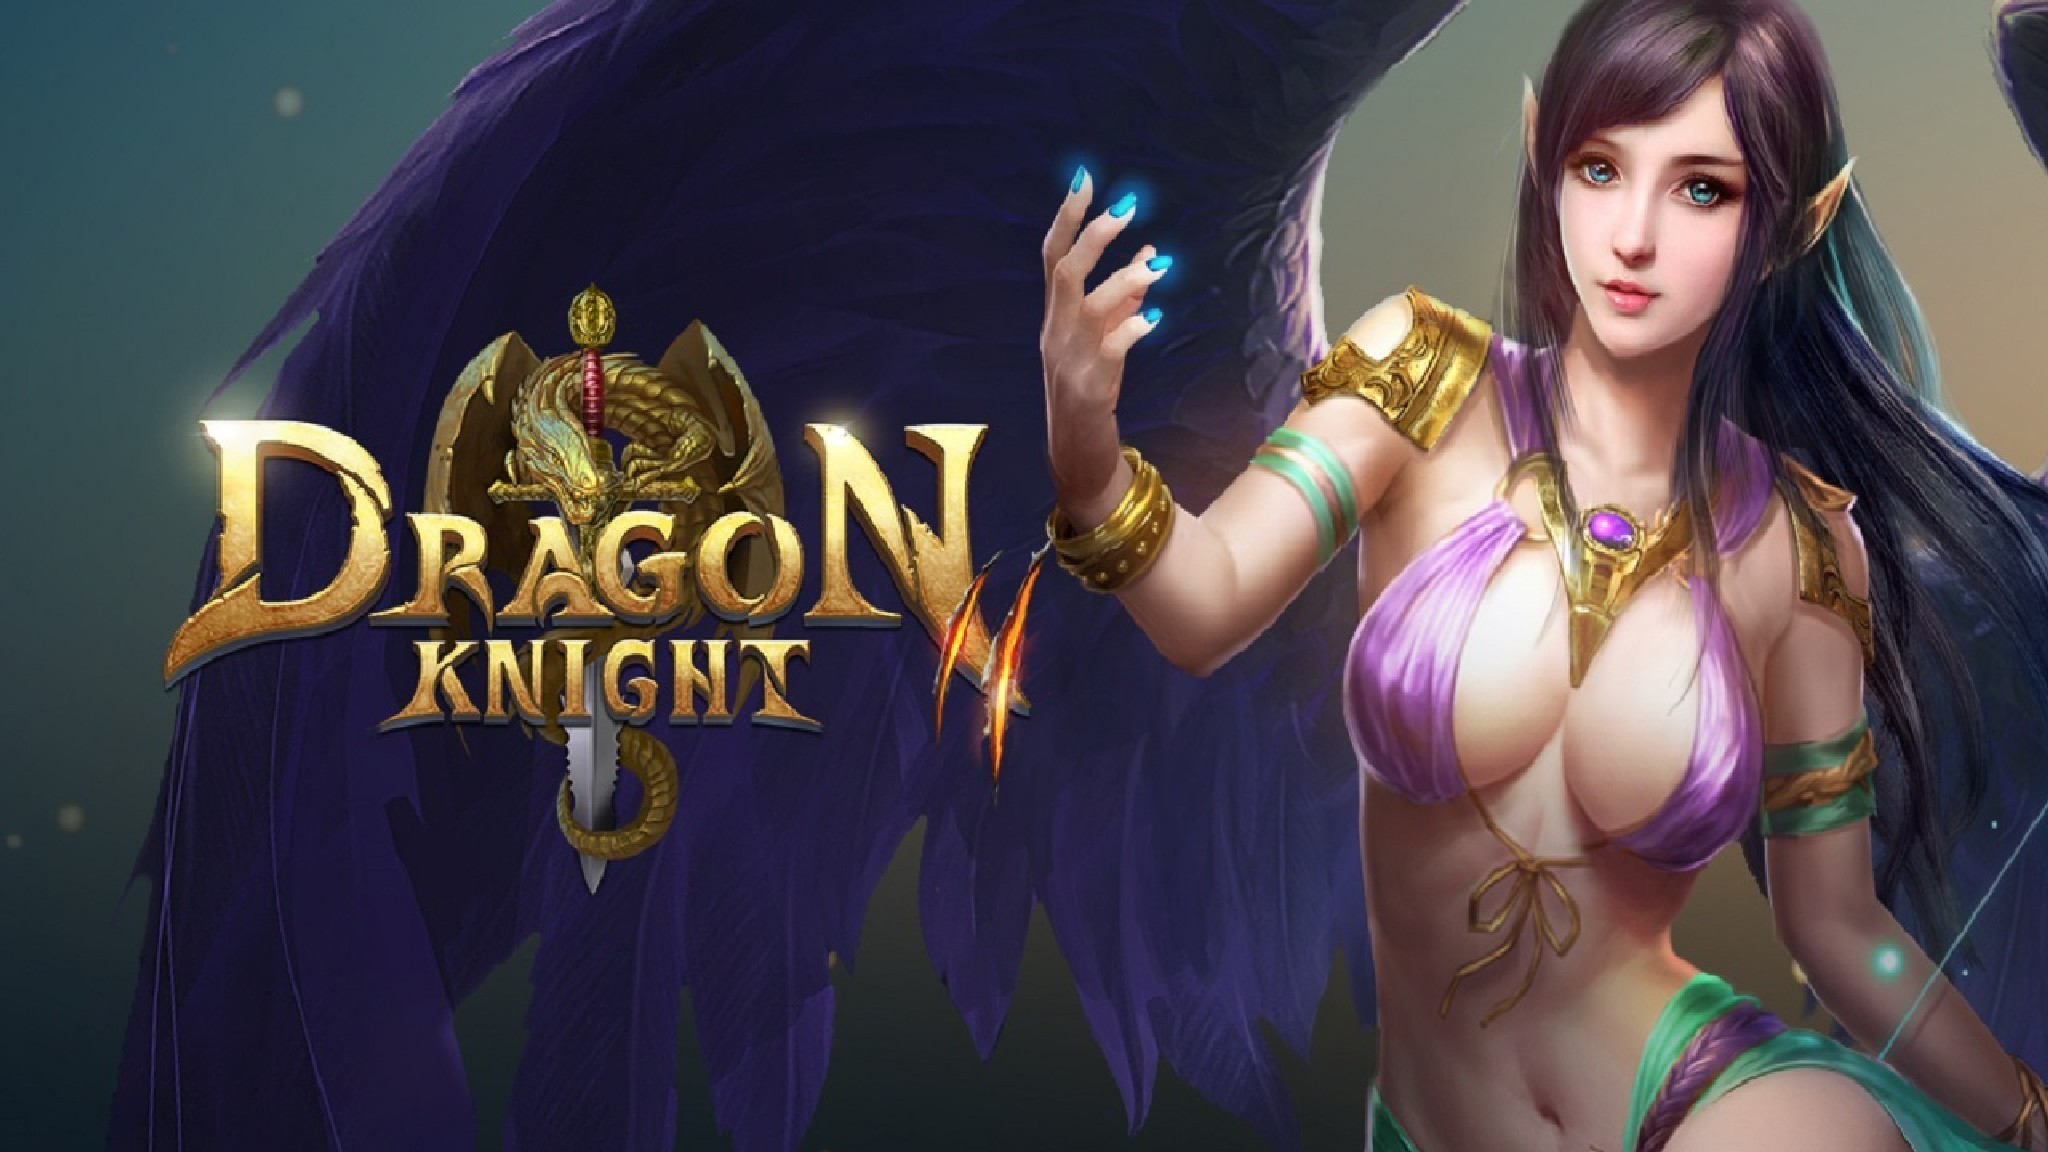 Играть Dragon Knight 2 онлайн в бразуере